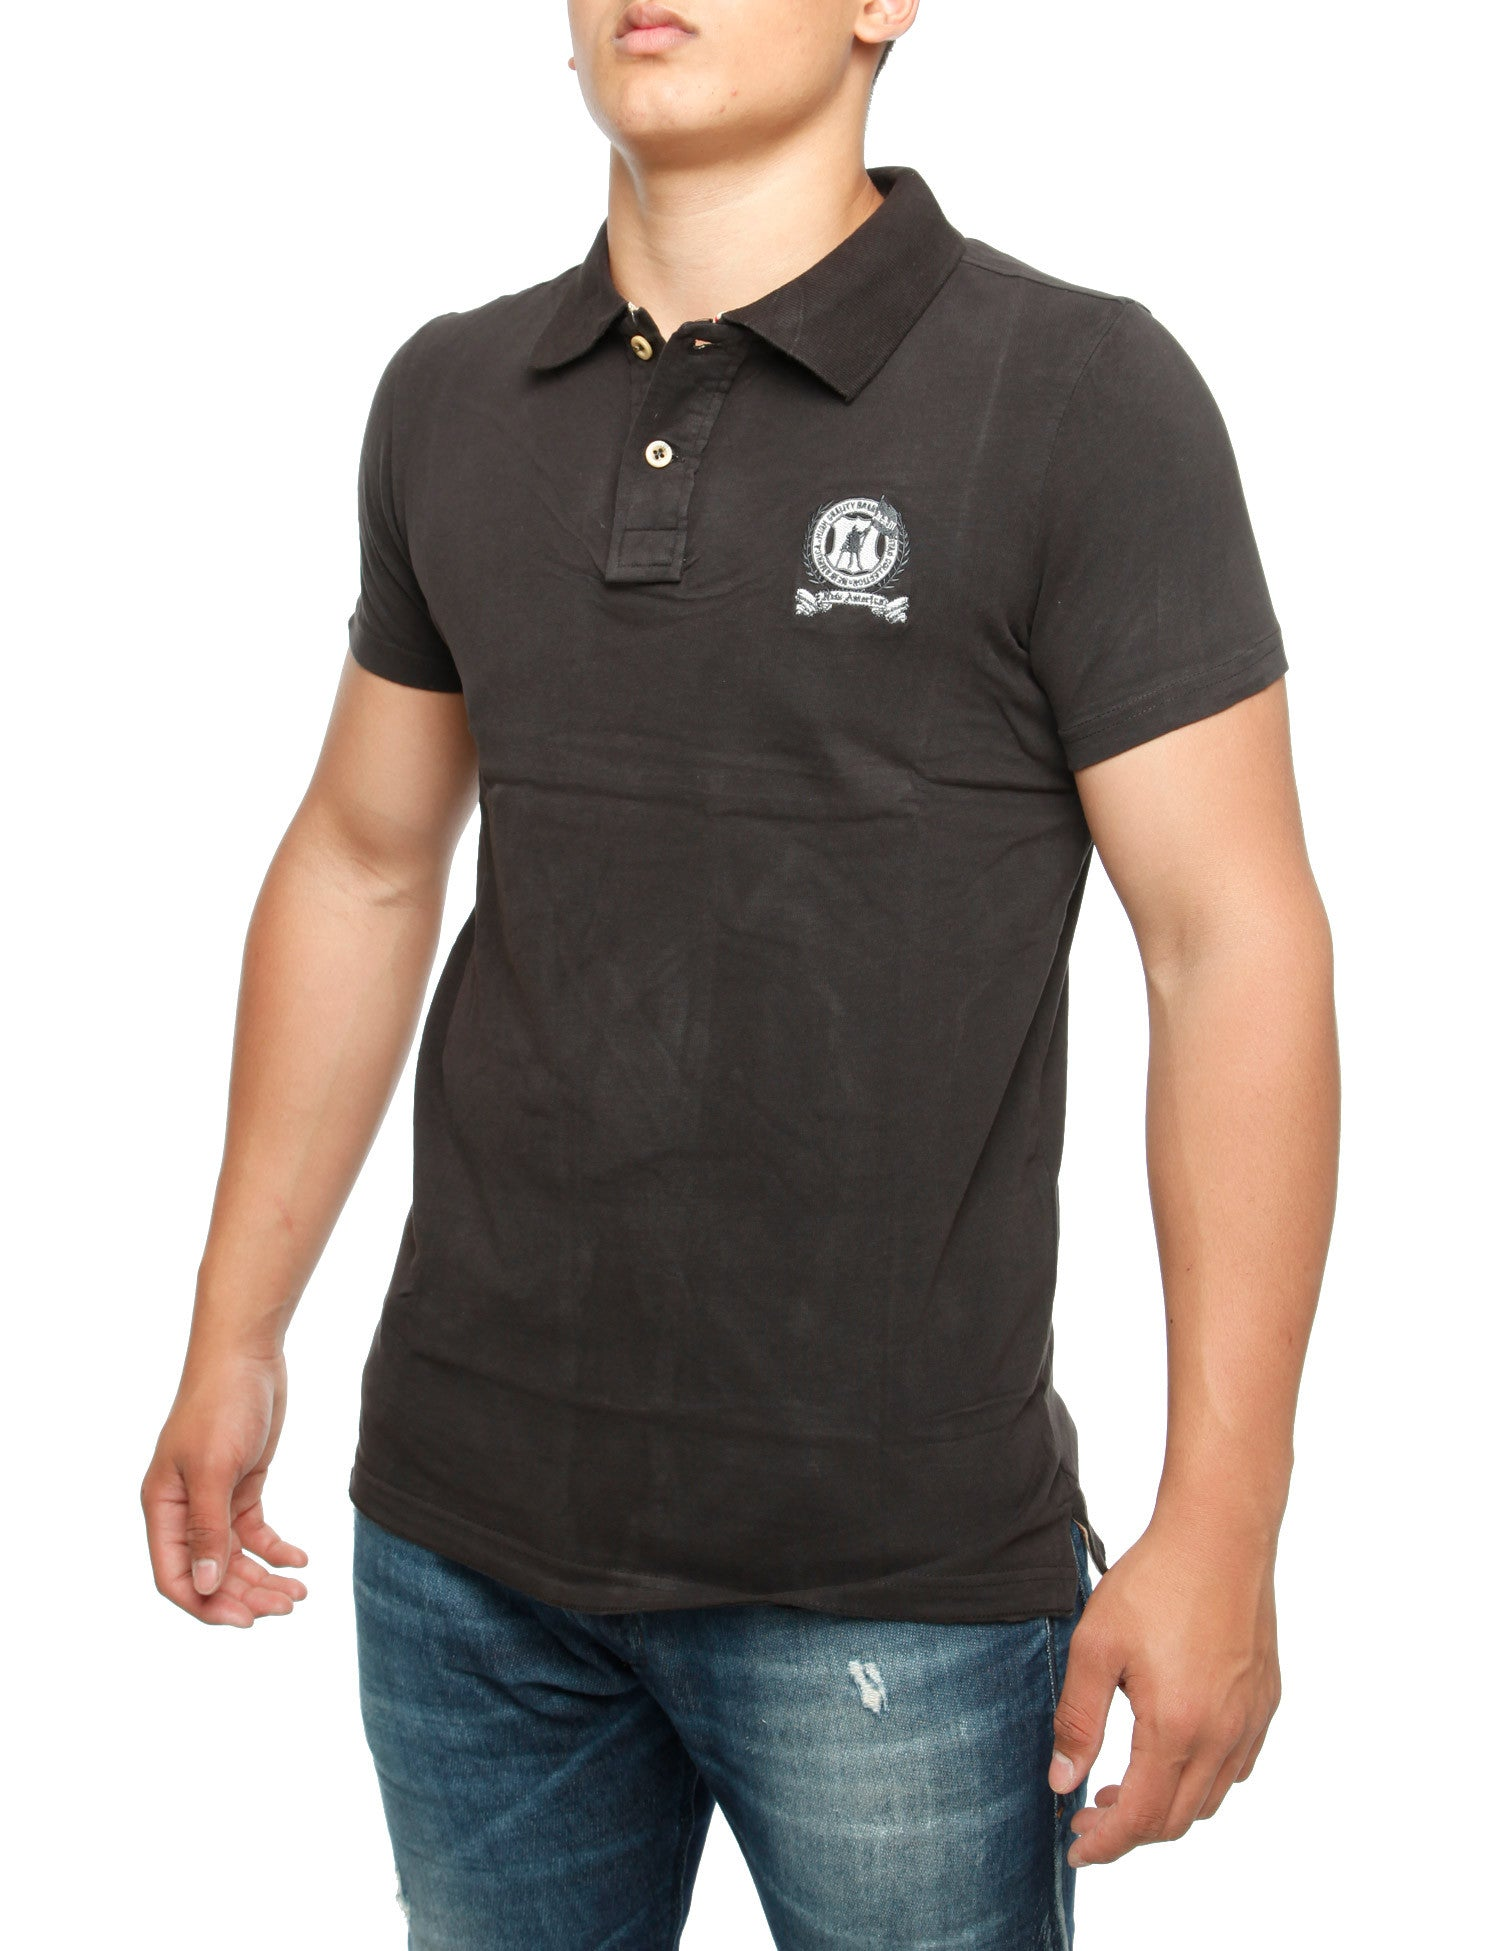 Abaris Huntington Polo Shirt Black